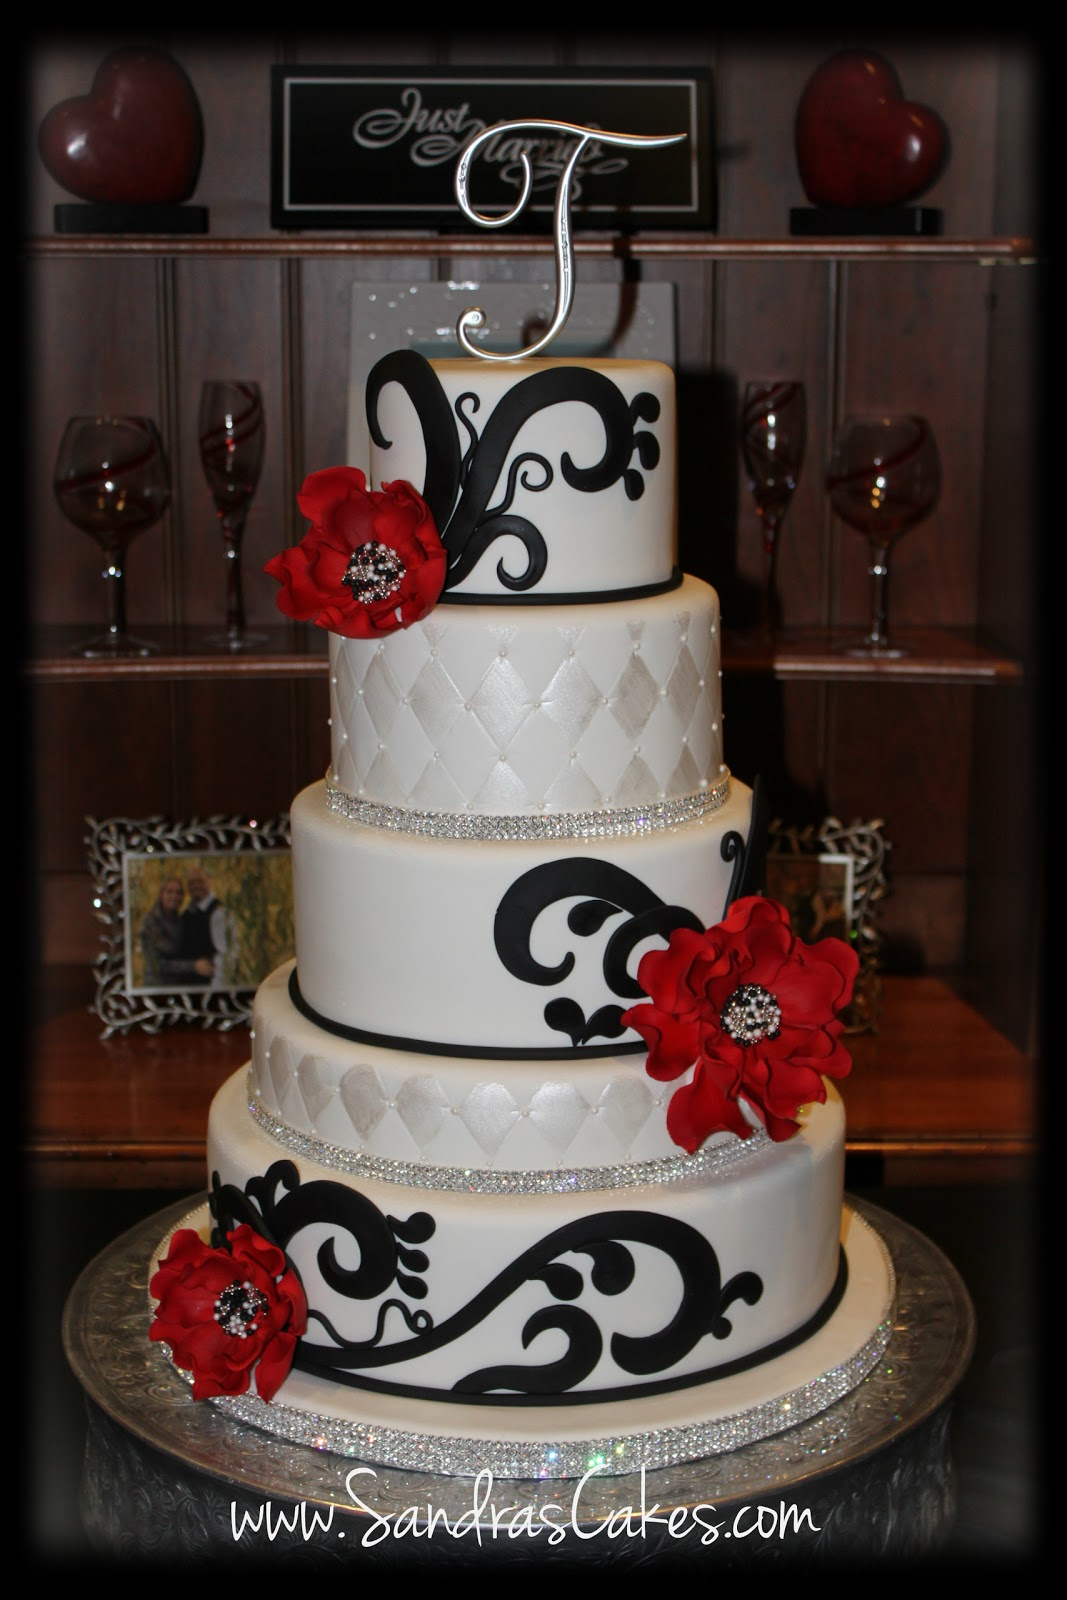 red black and white wedding cake. Black Bedroom Furniture Sets. Home Design Ideas